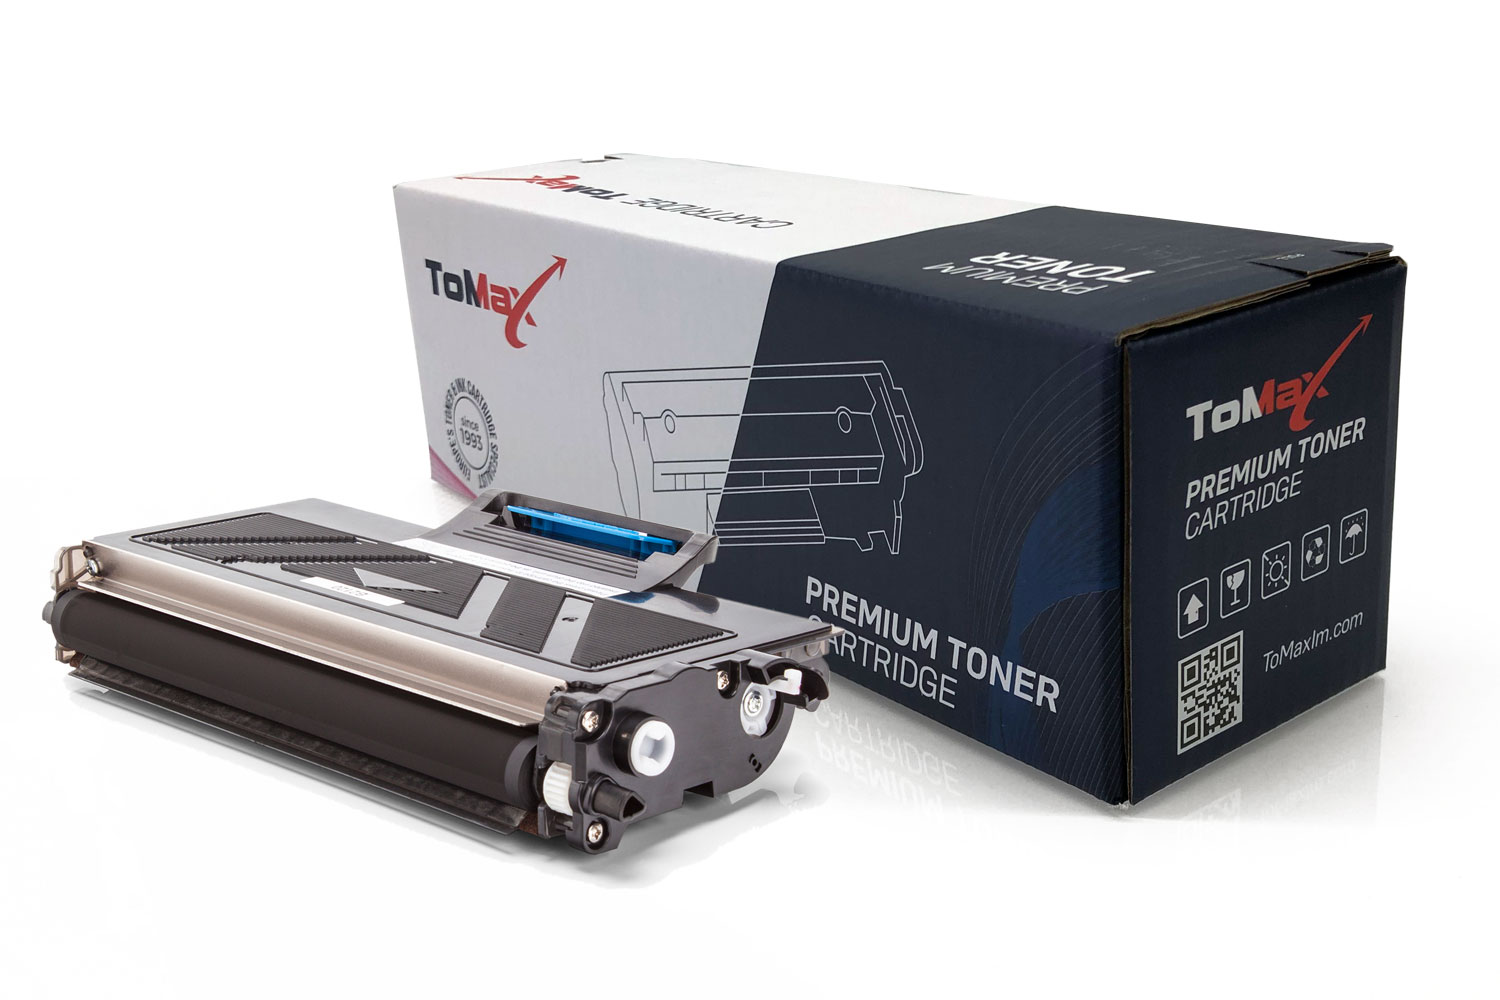 ToMax Premium Toner Cartridge replaces HP MLT-D1052L (SU758A) Black